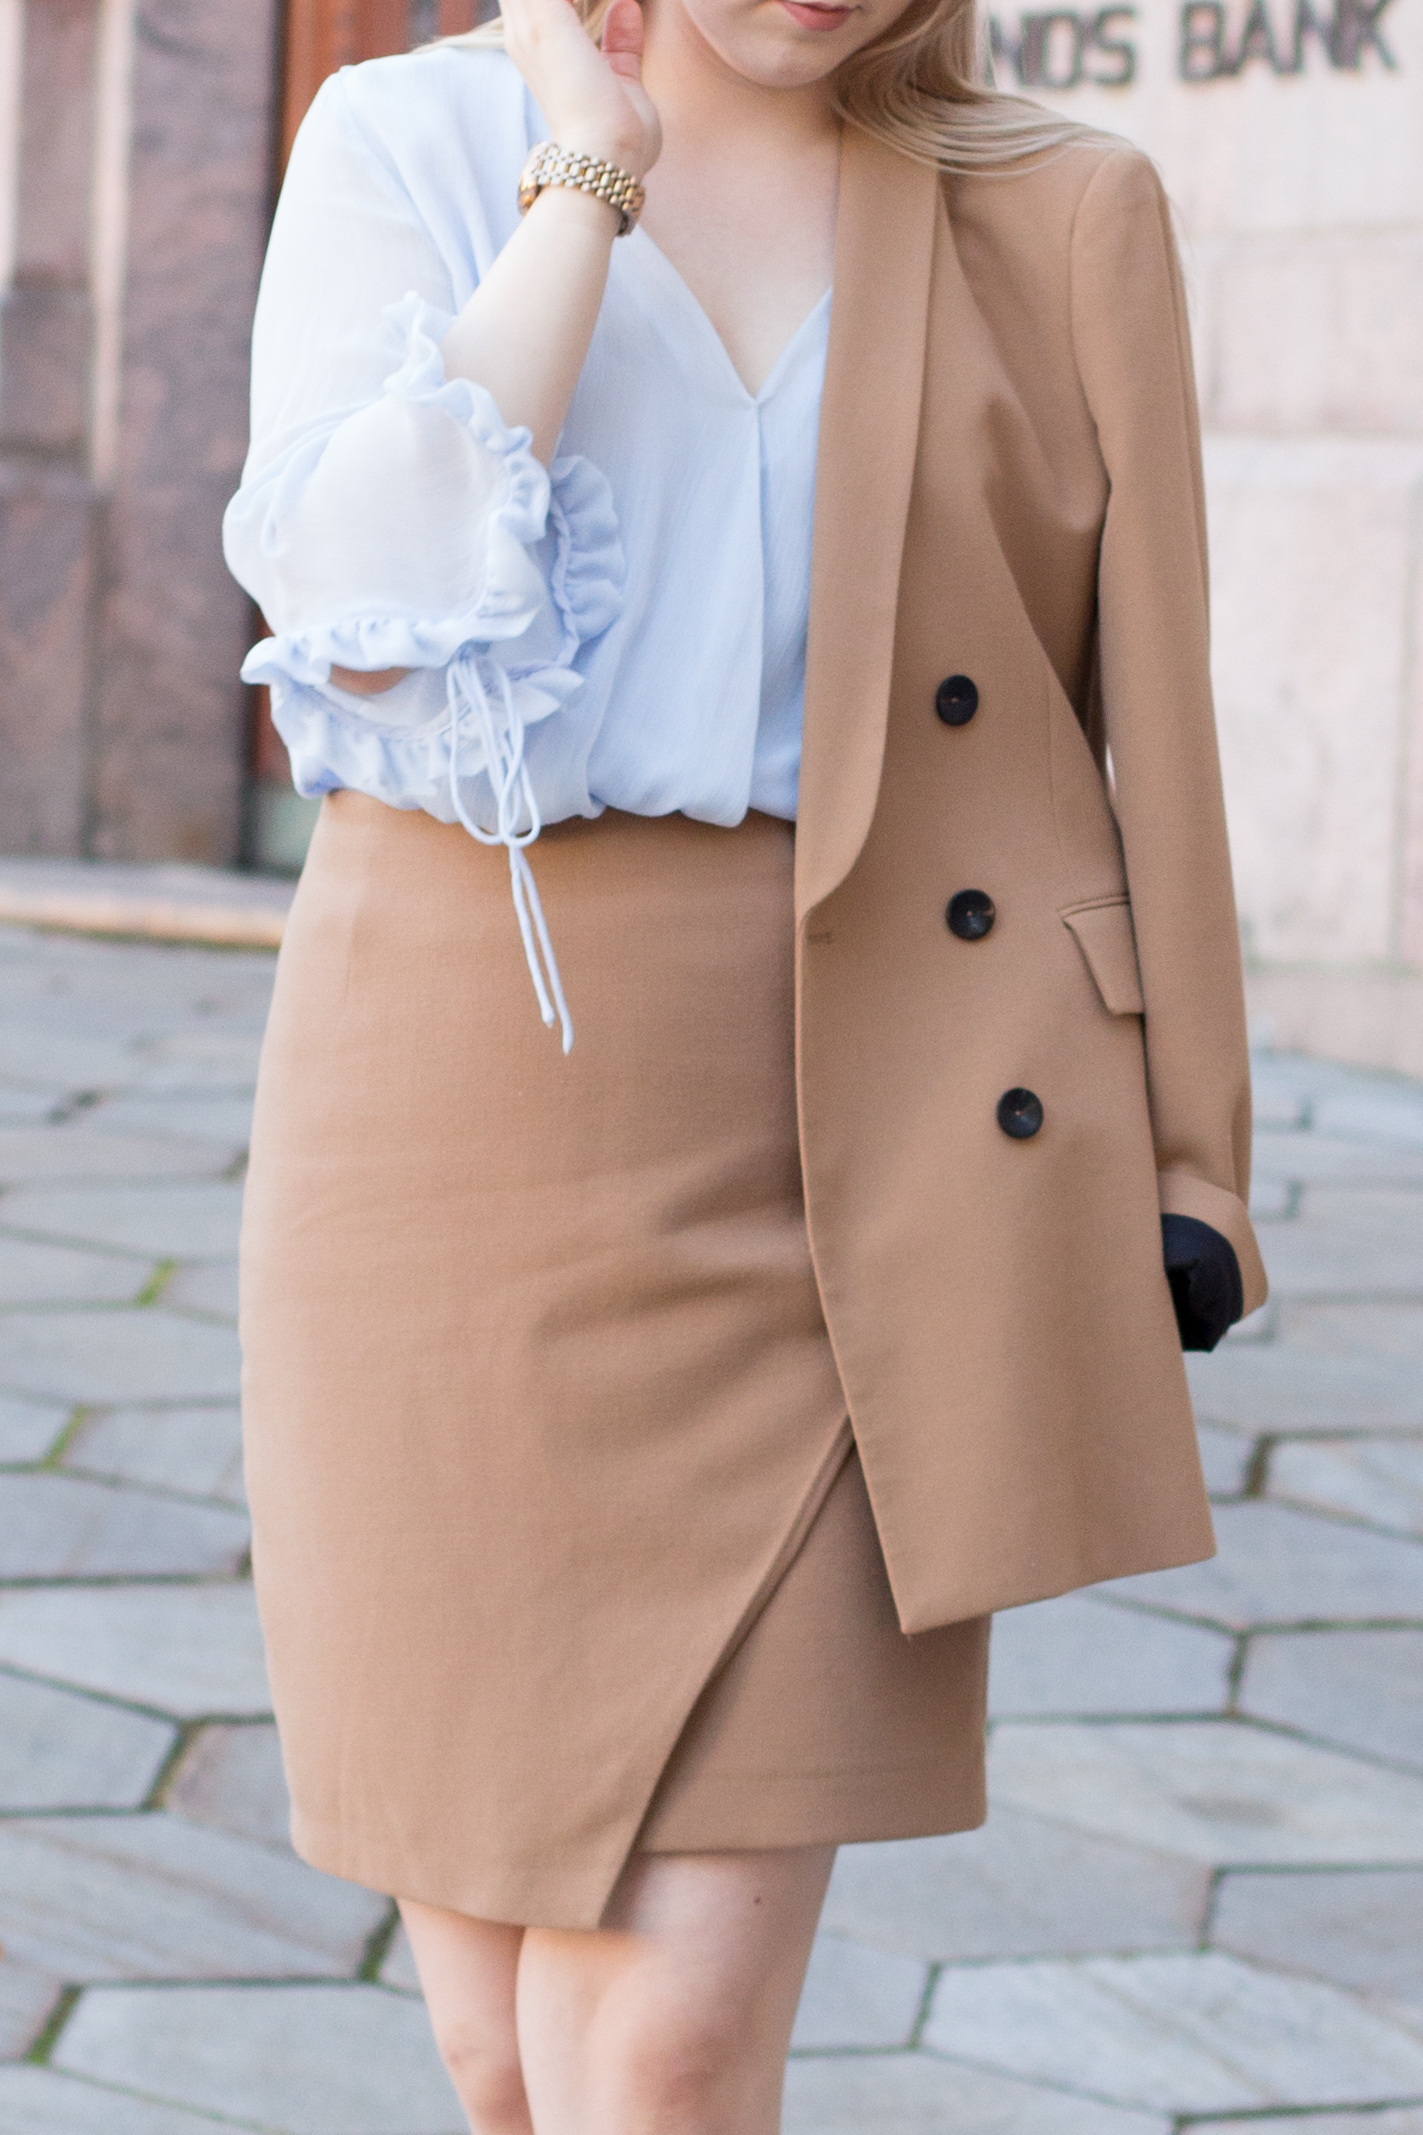 Brown blazer suit with baby blue shirt (9 of 21).jpg